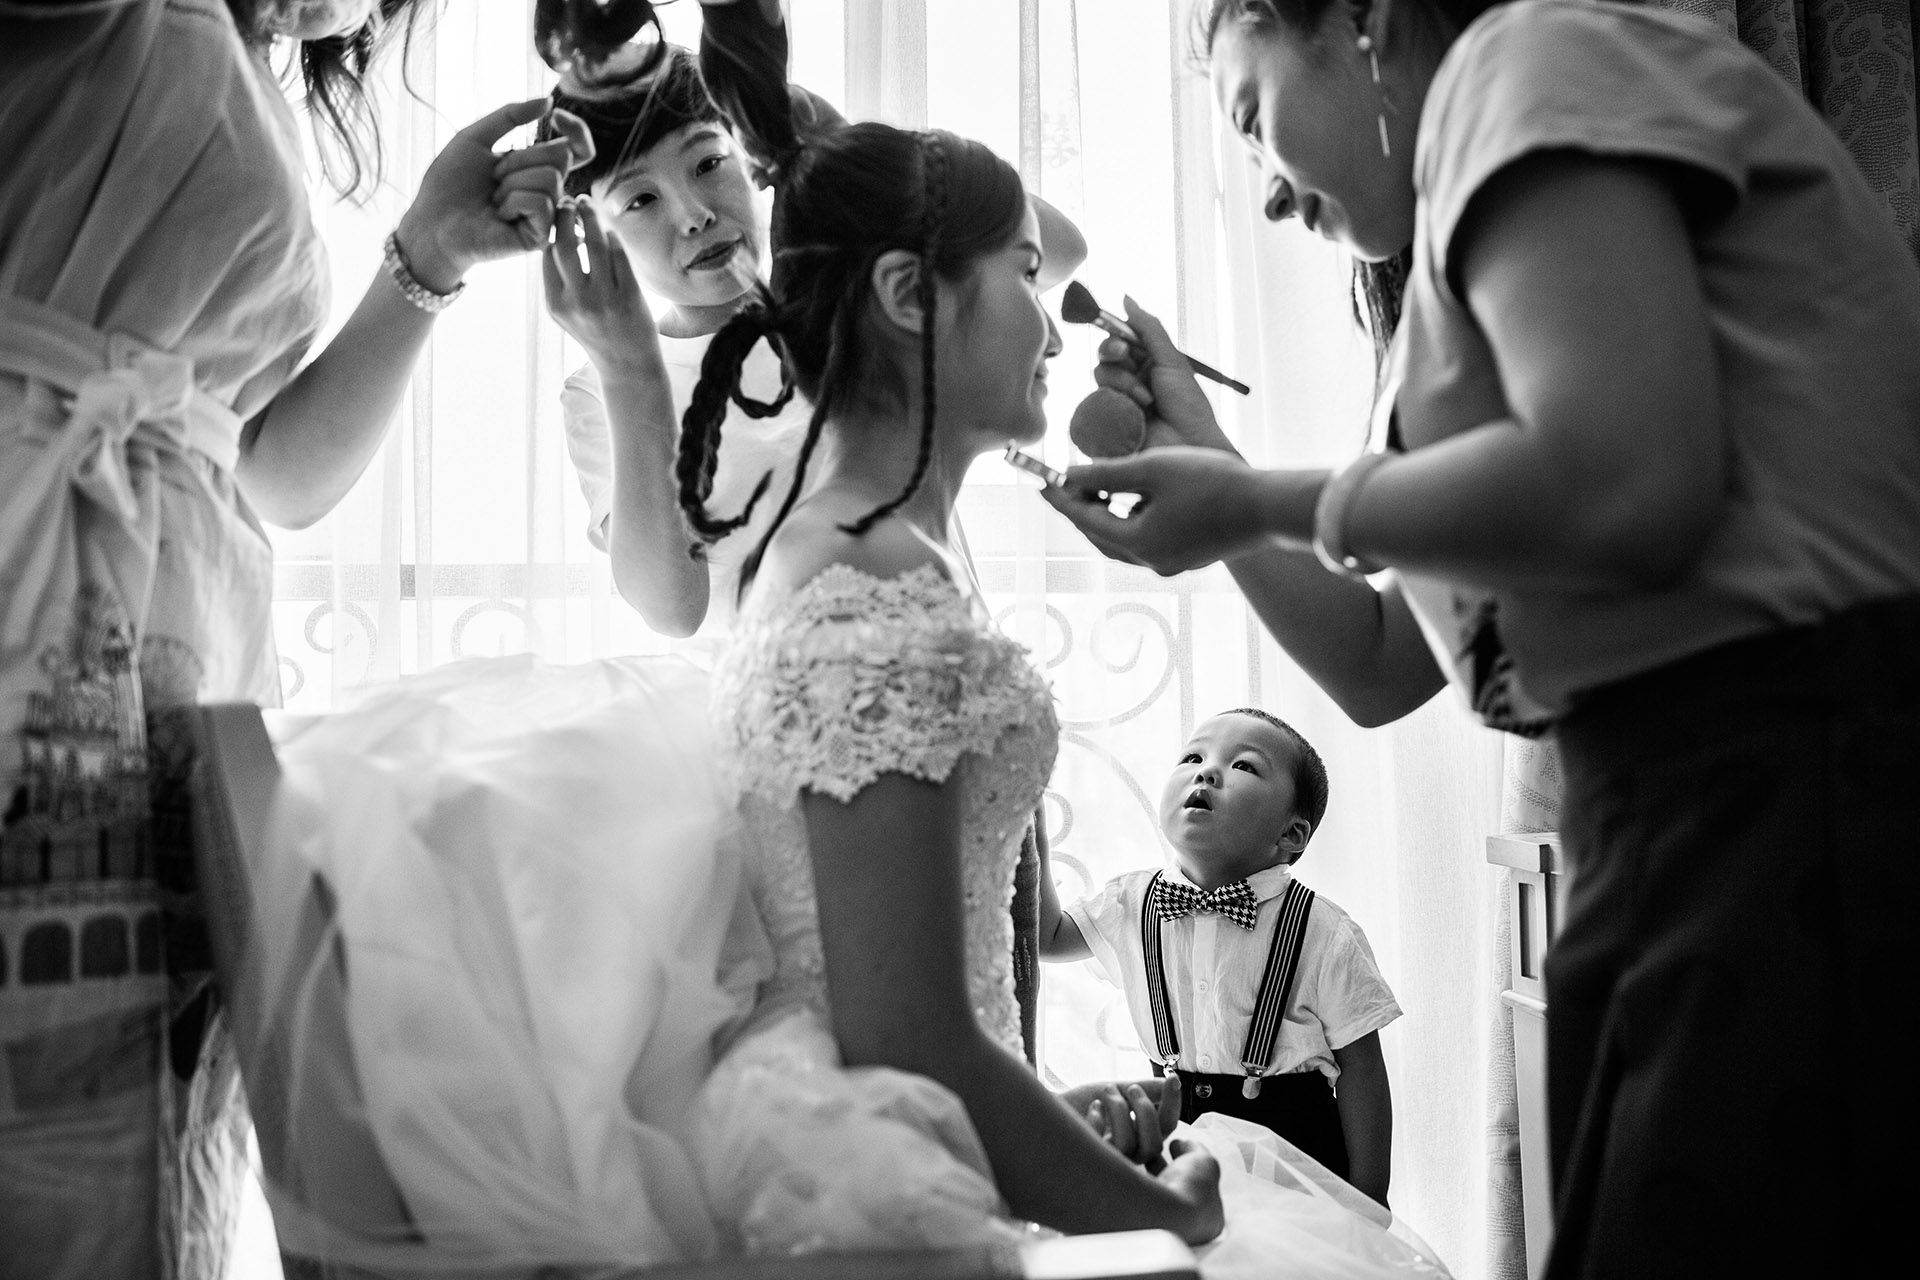 Bridesmaids and a little boy watch as the bride gets her makeup done in a busy room in this black and white photo